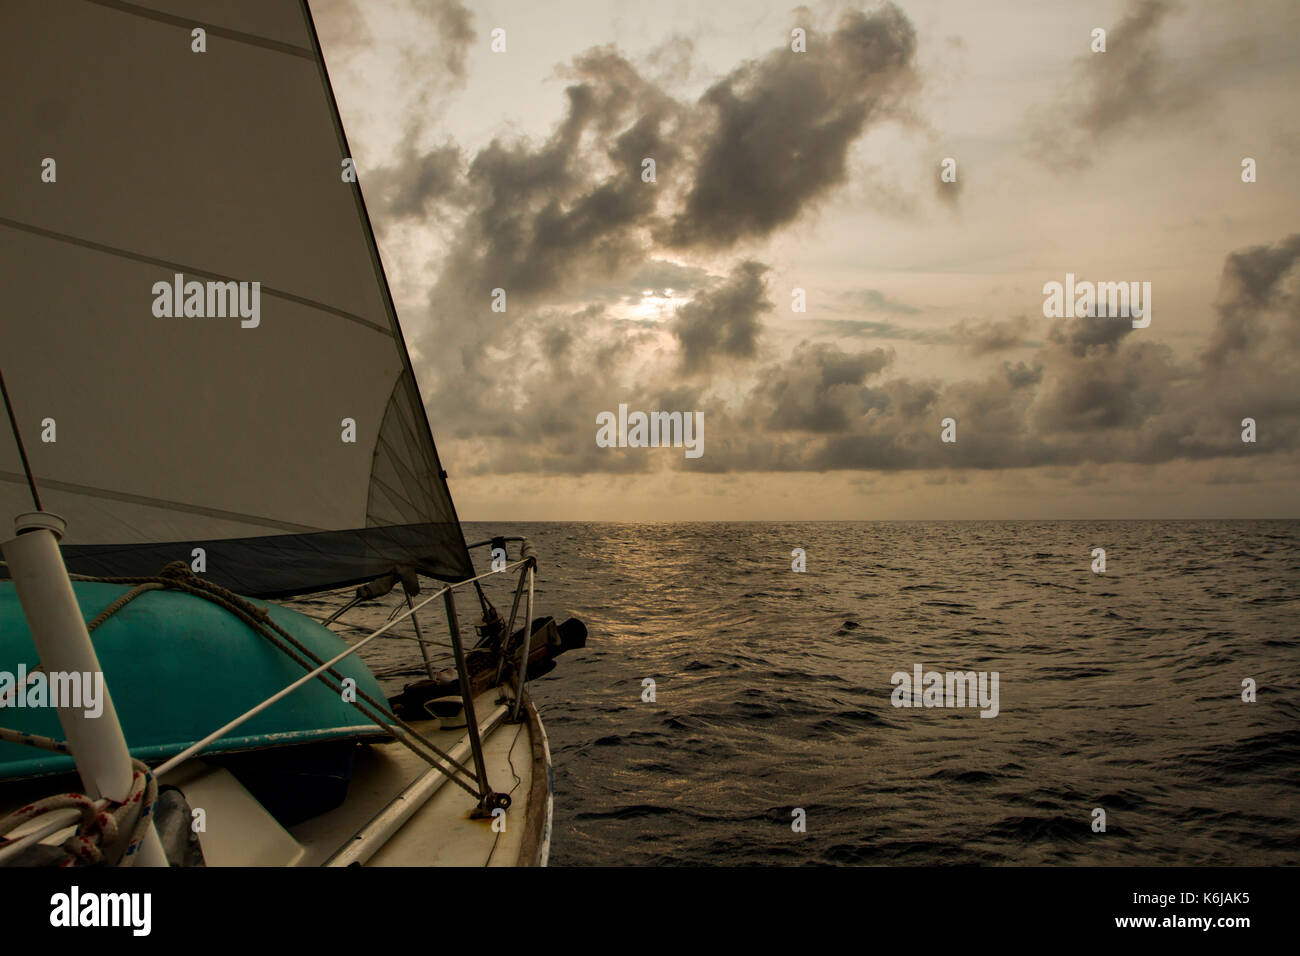 Bow of a sailboat cutting through water on journey over Caribbean Sea, Honduras - Stock Image